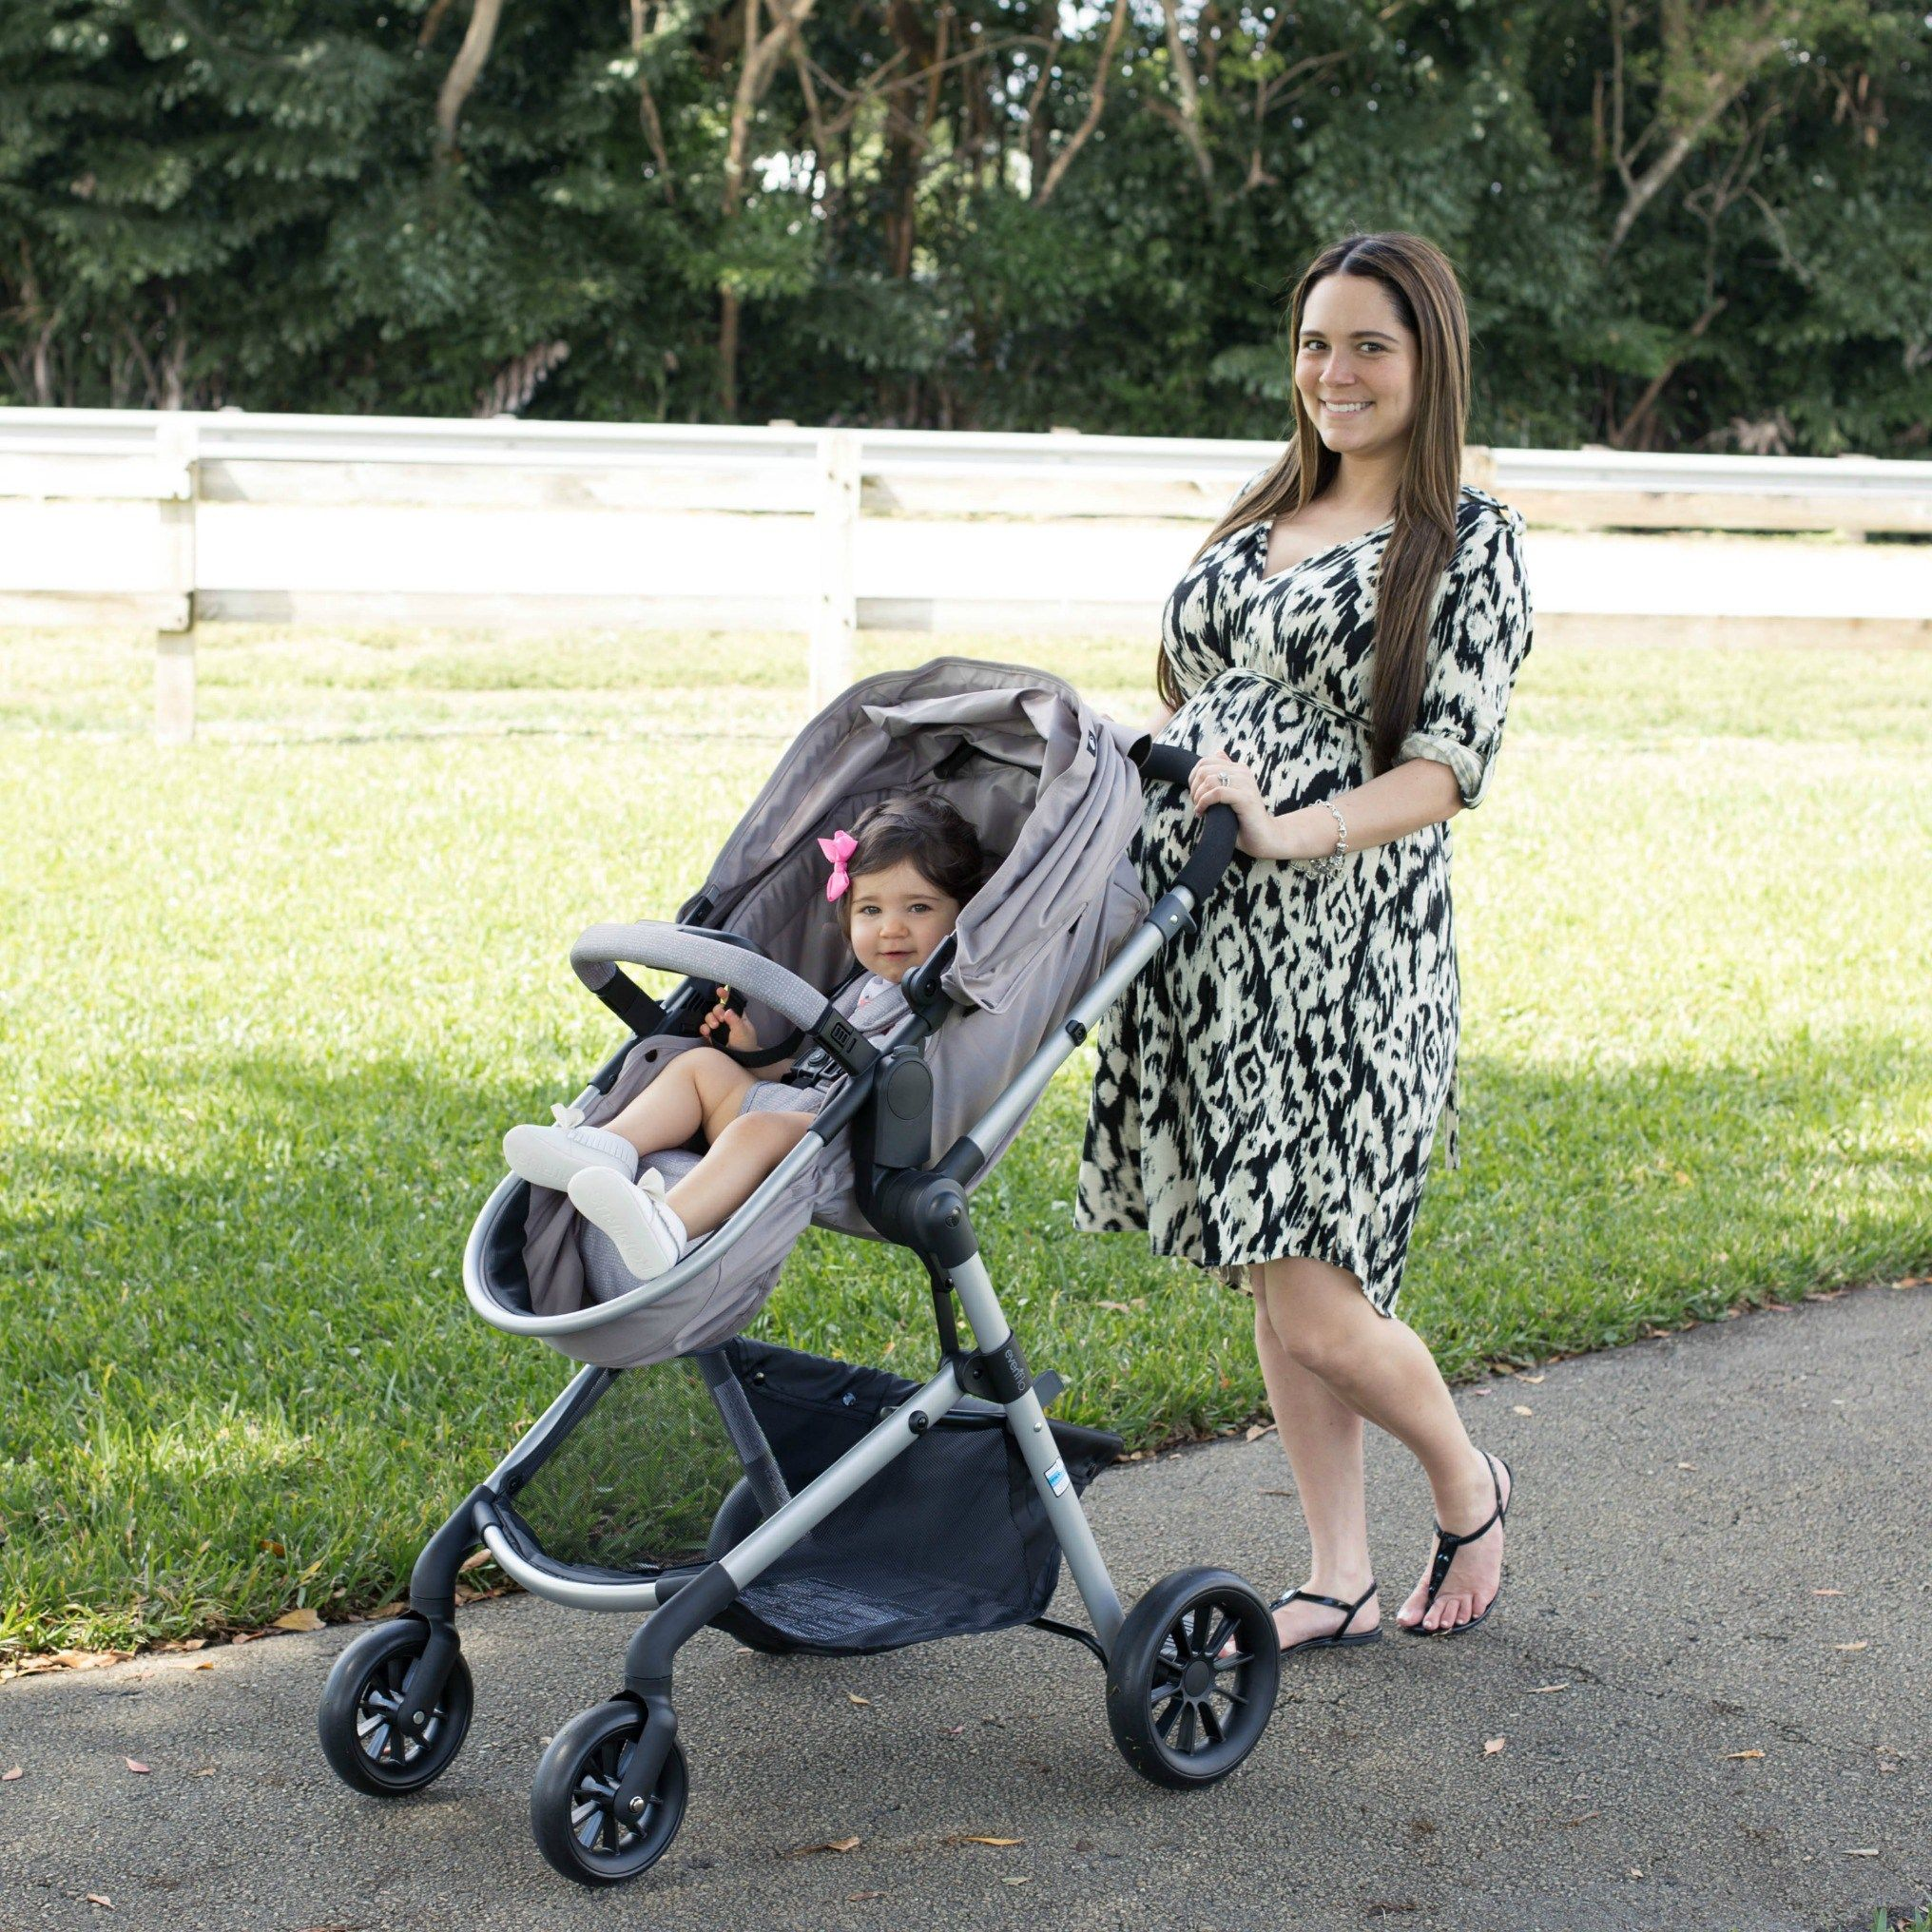 Evenflo Pivot Travel System Review Laura & Co. baby